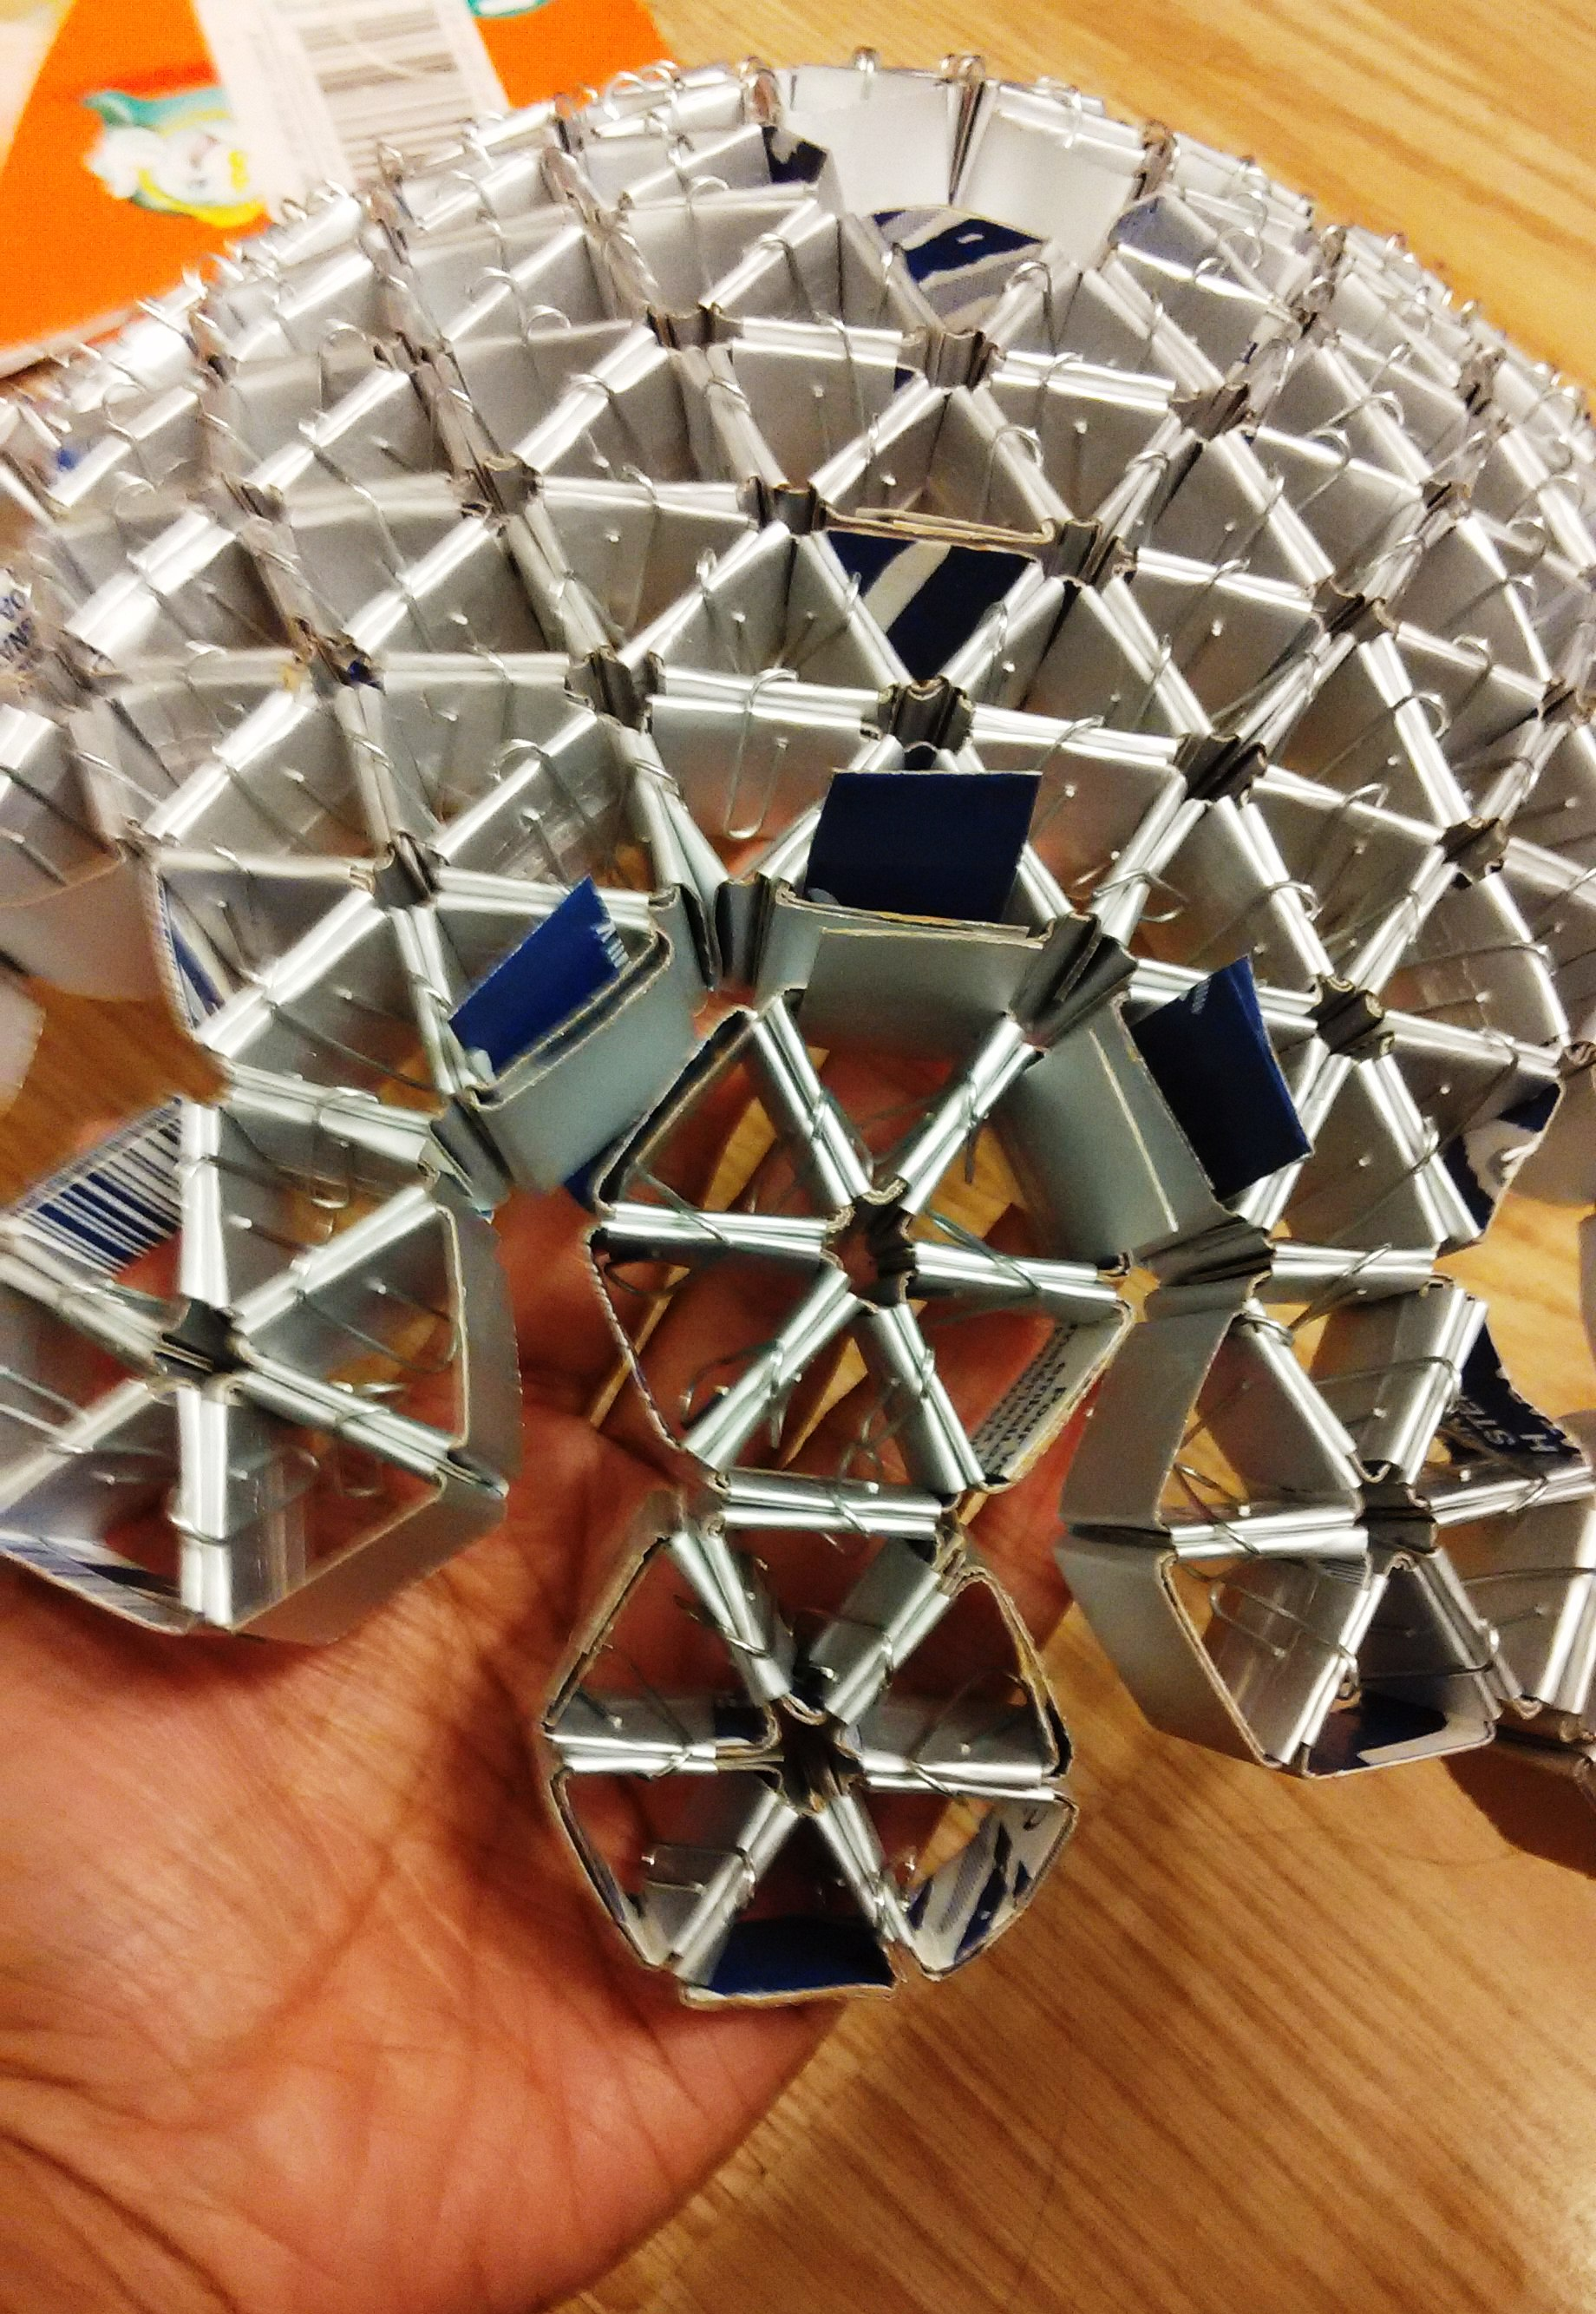 Picture of Forming the Hemispheres With the Help of Hexagons